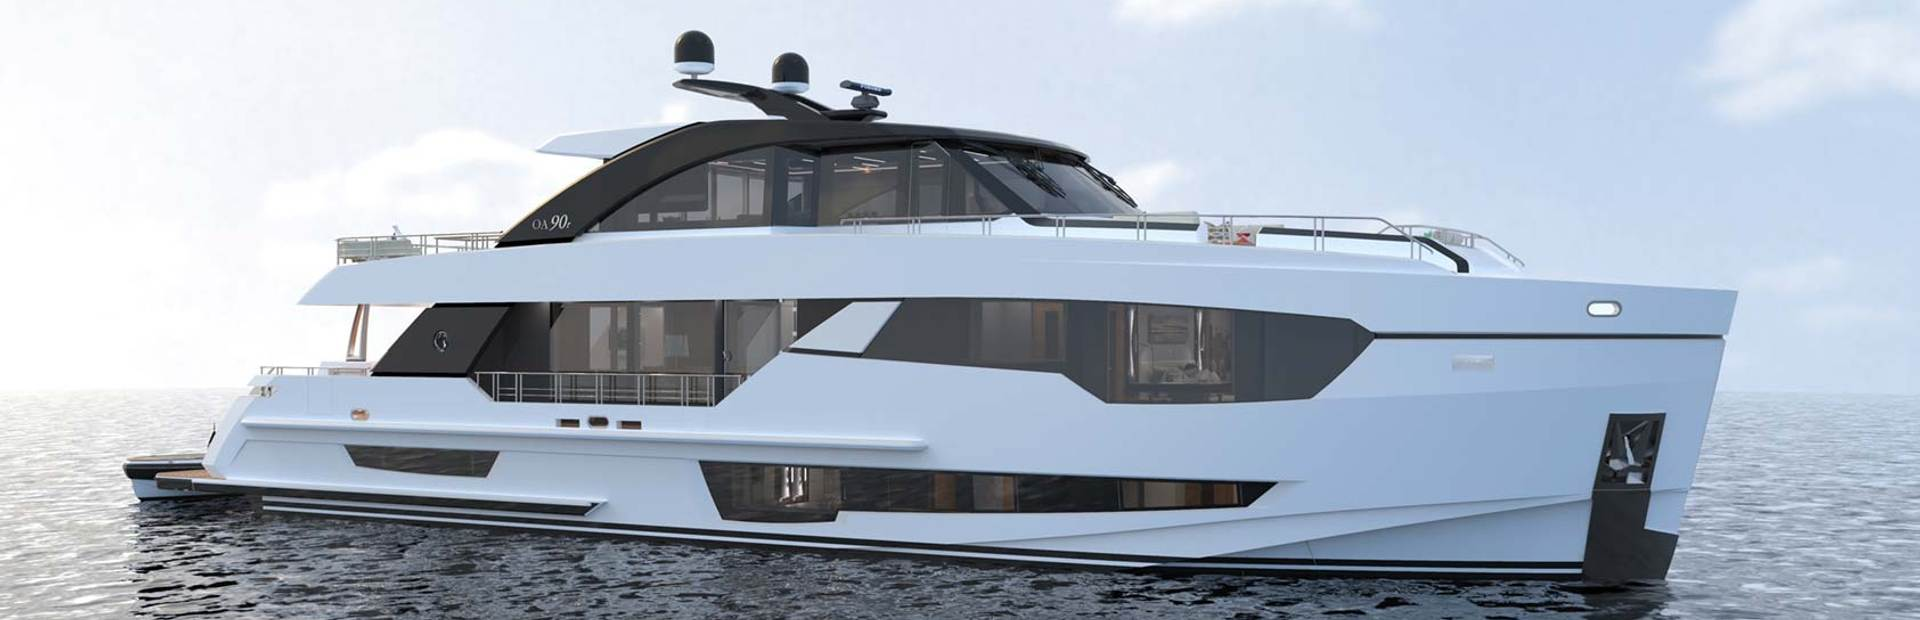 90R Enclosed Yacht Charter